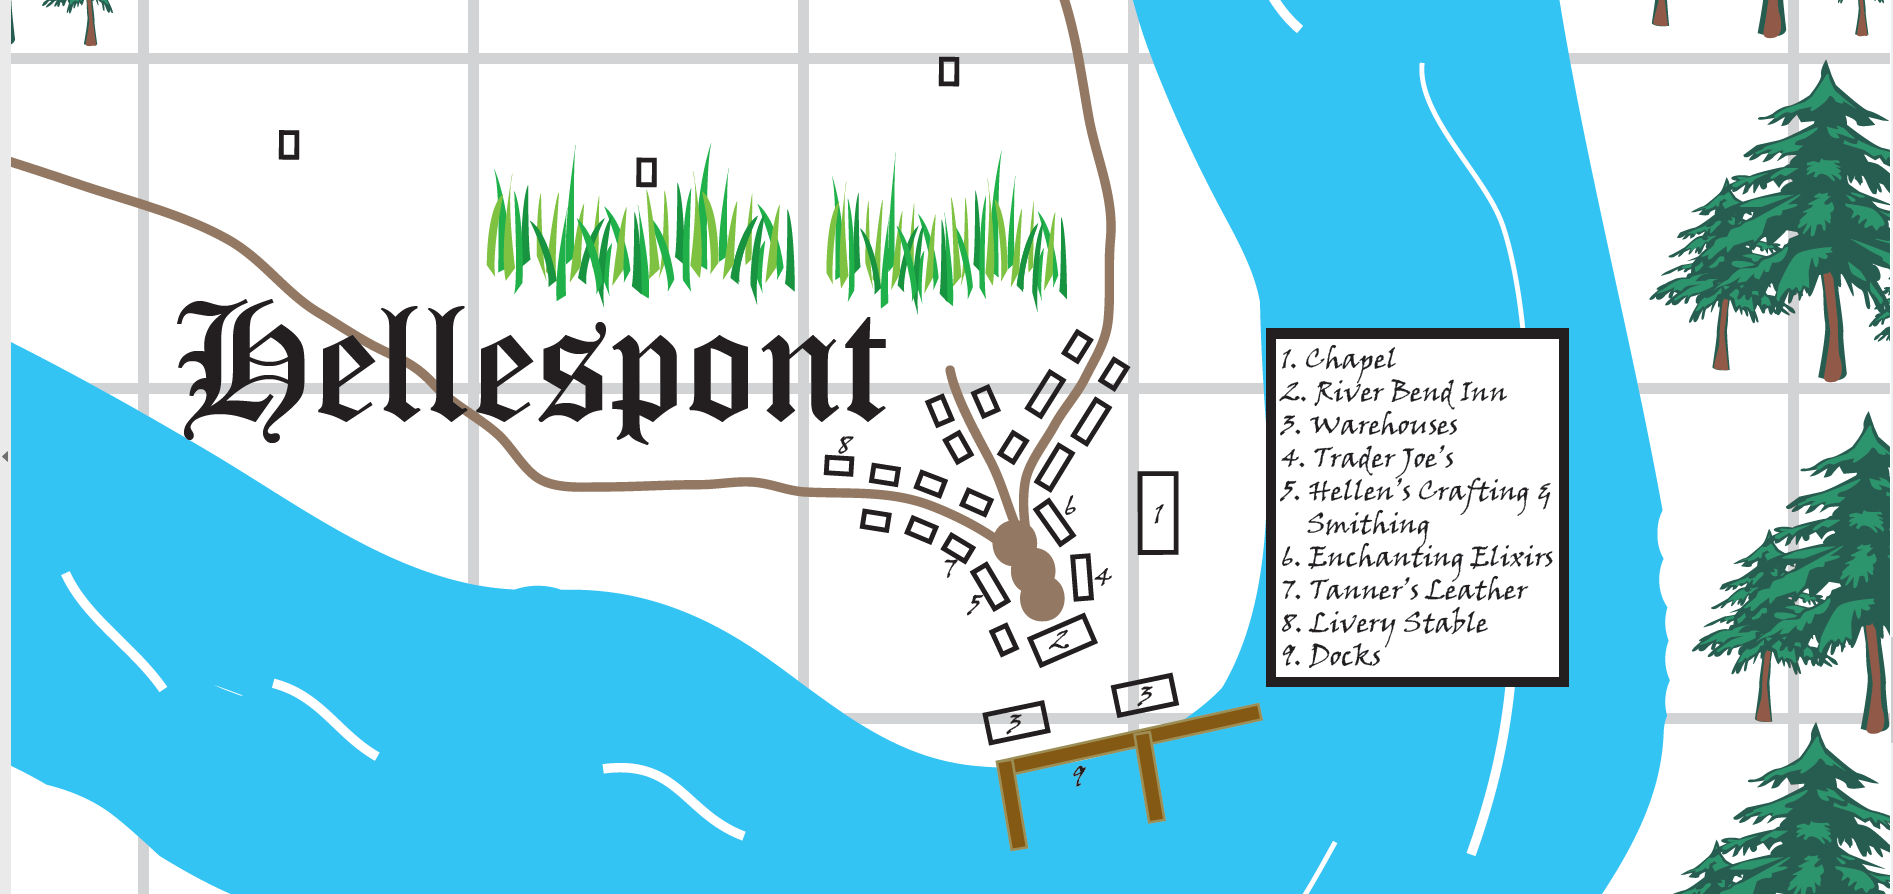 Hellespont_Town_Map.PNG